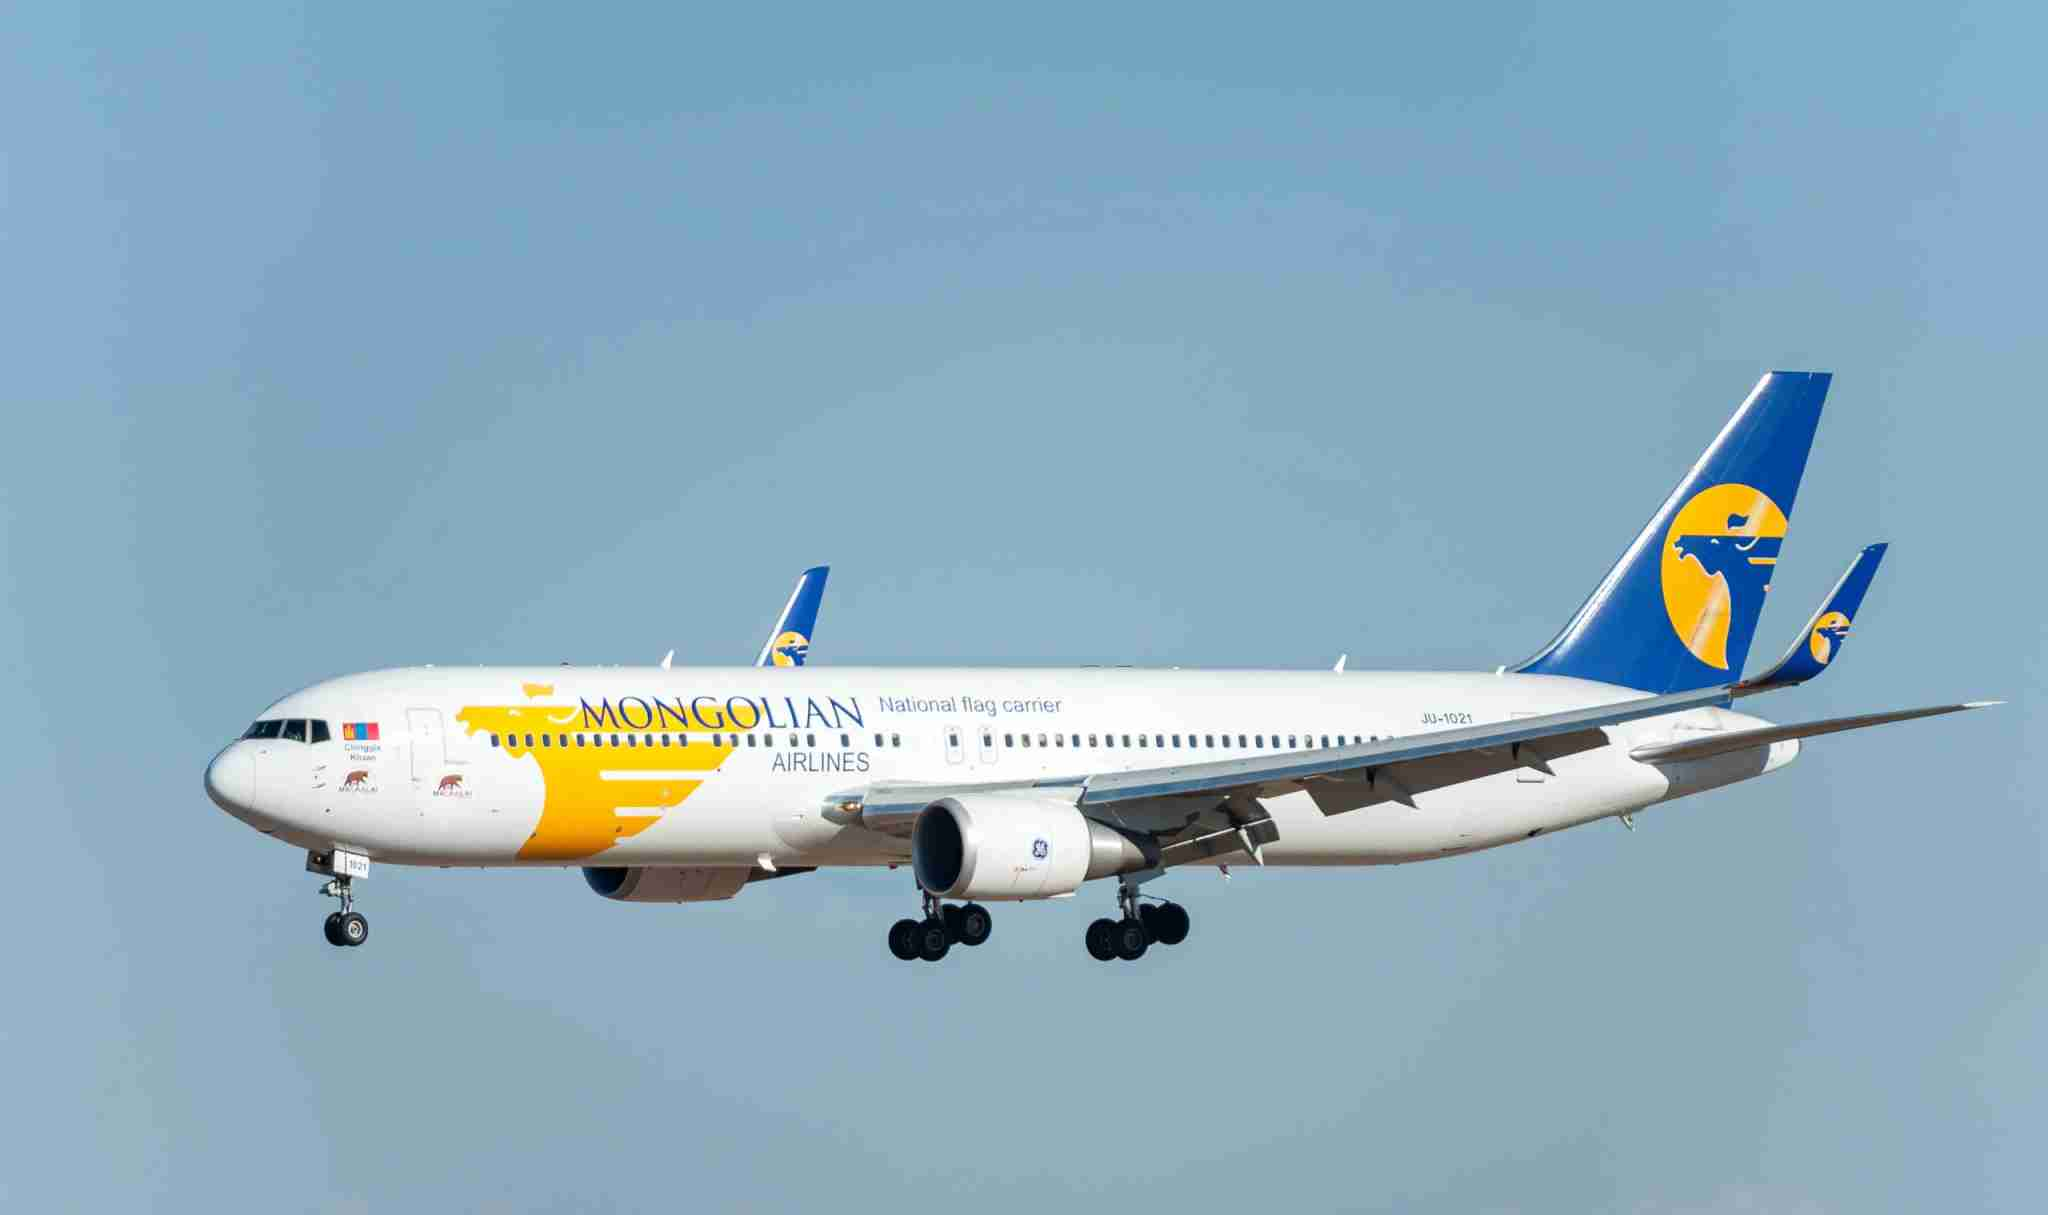 MIAT Mongolian Airlines. Photo by photosounds/Shutterstock